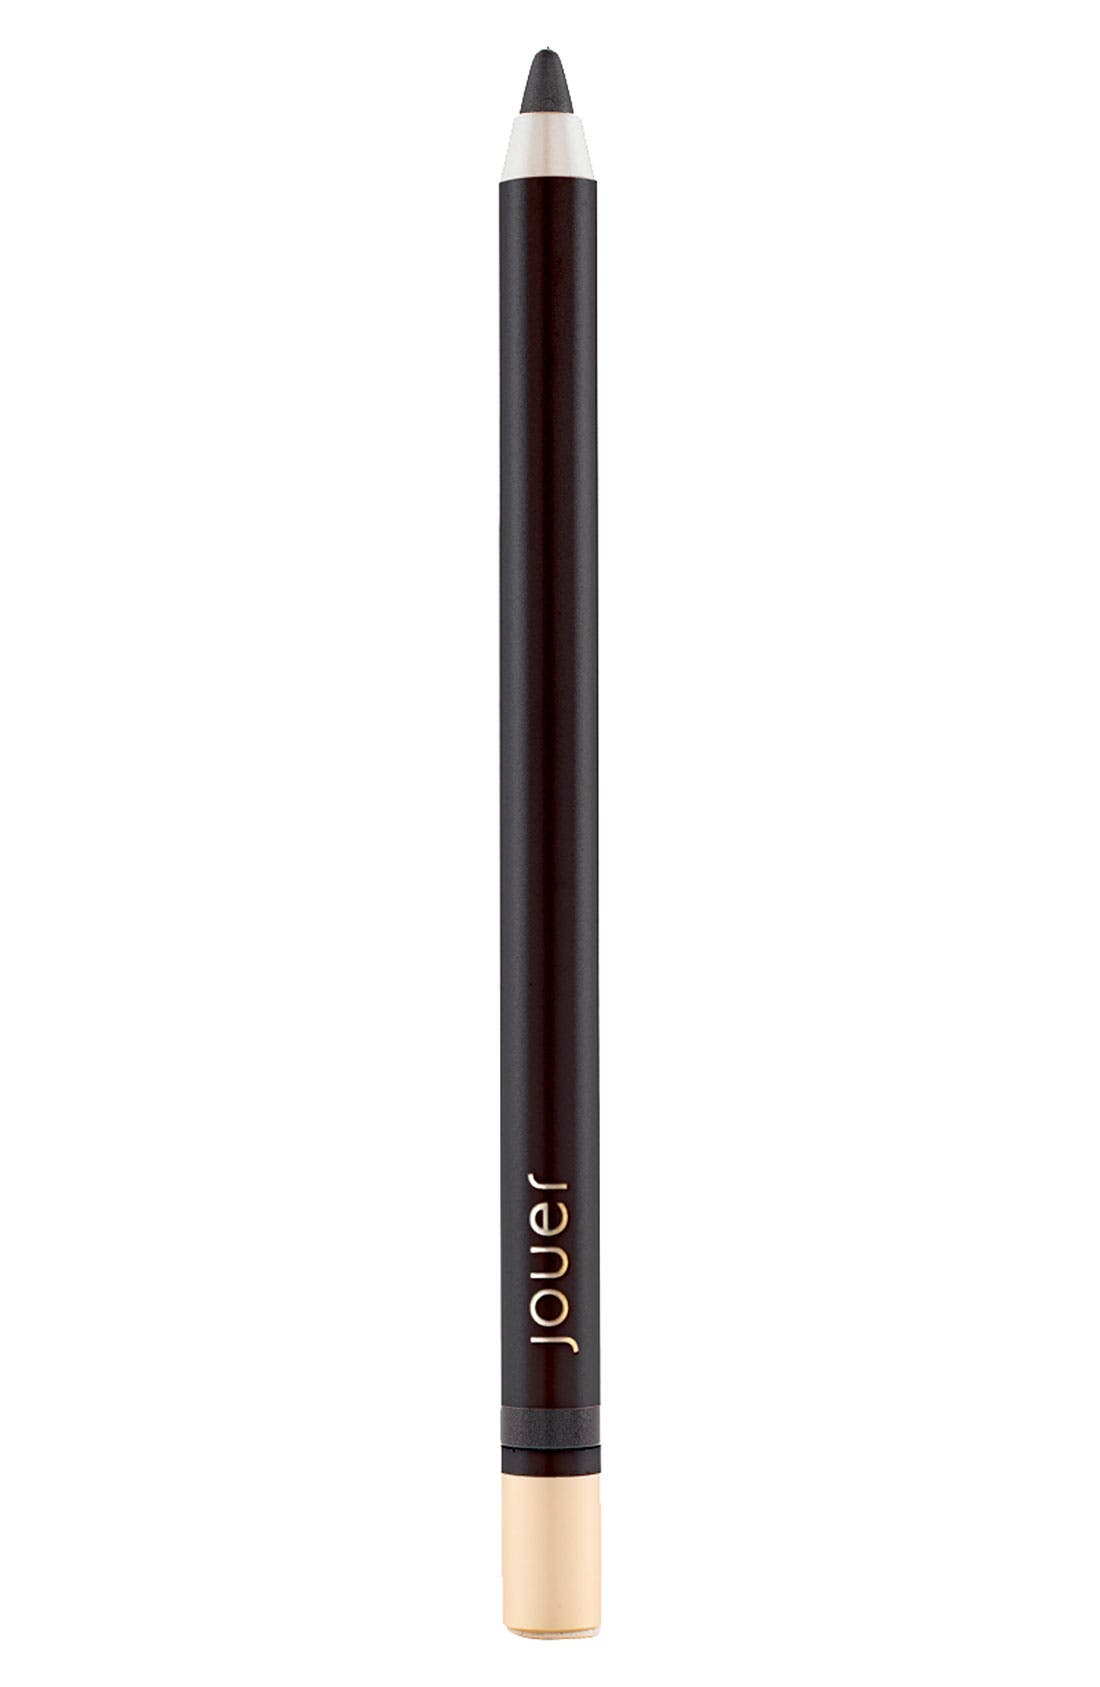 Jouer Eye Definer Pencil